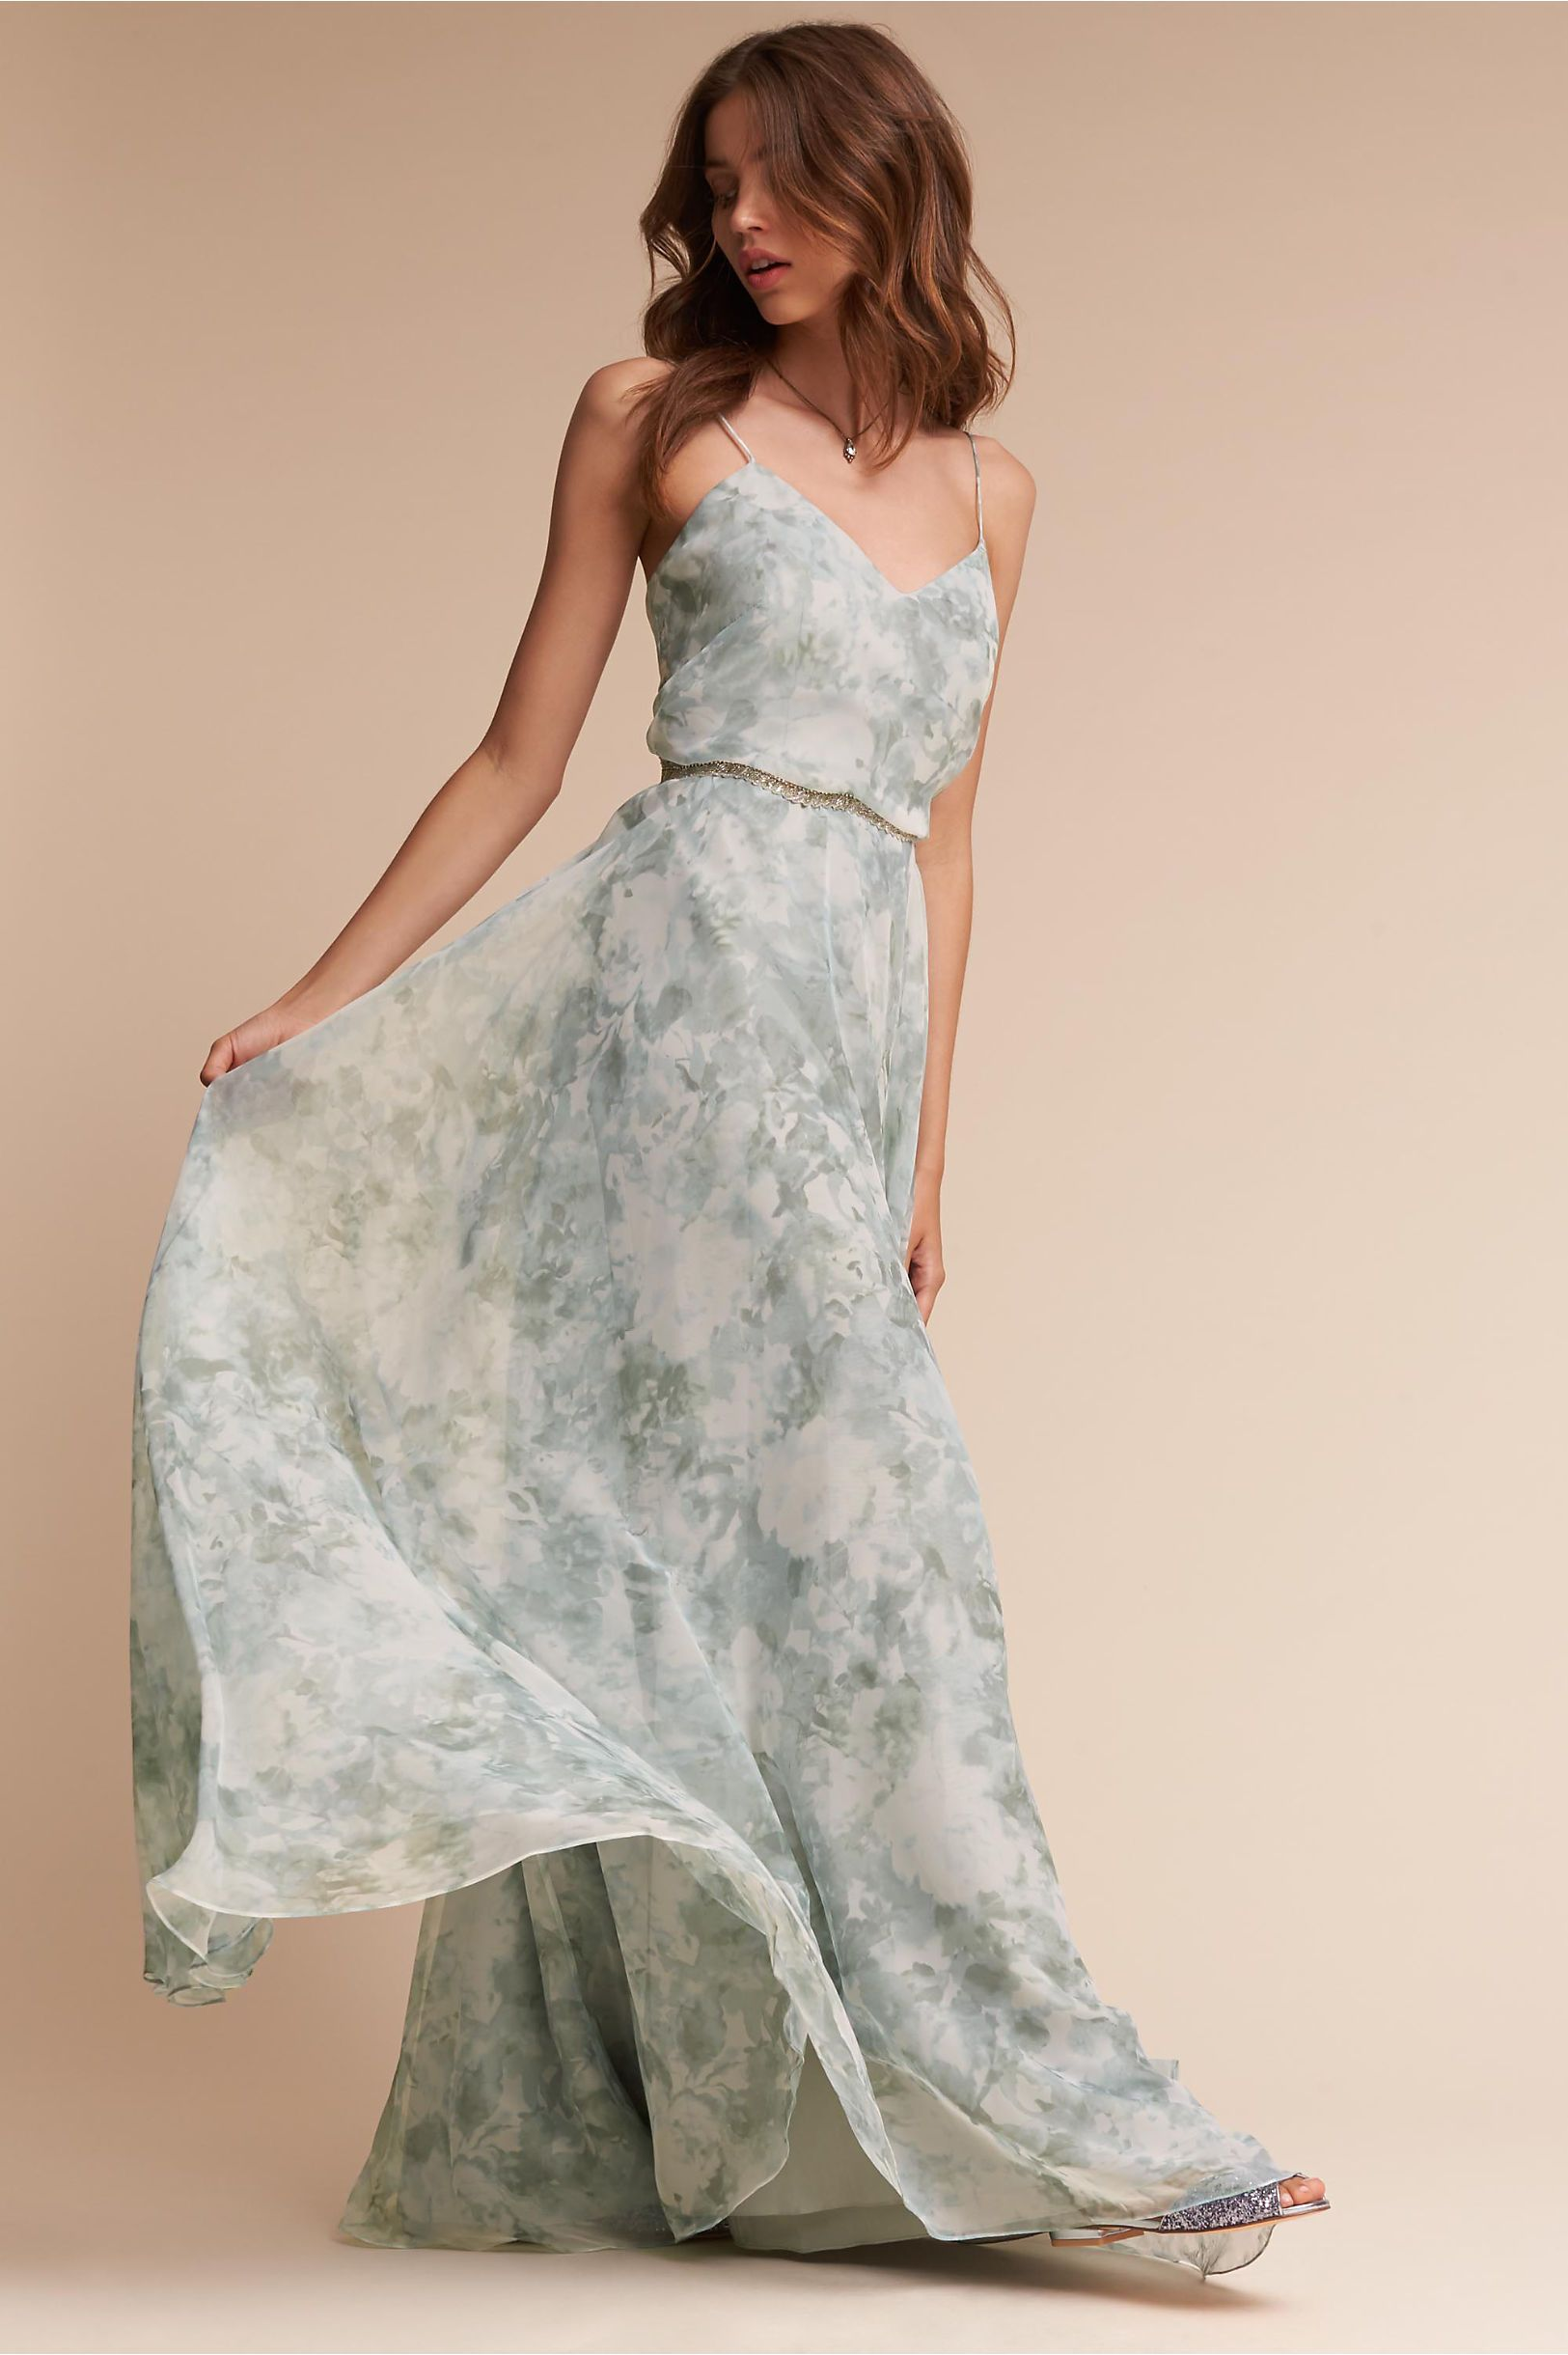 c594963a2b4 BHLDN s Jenny Yoo Inesse Dress in Mist Multi